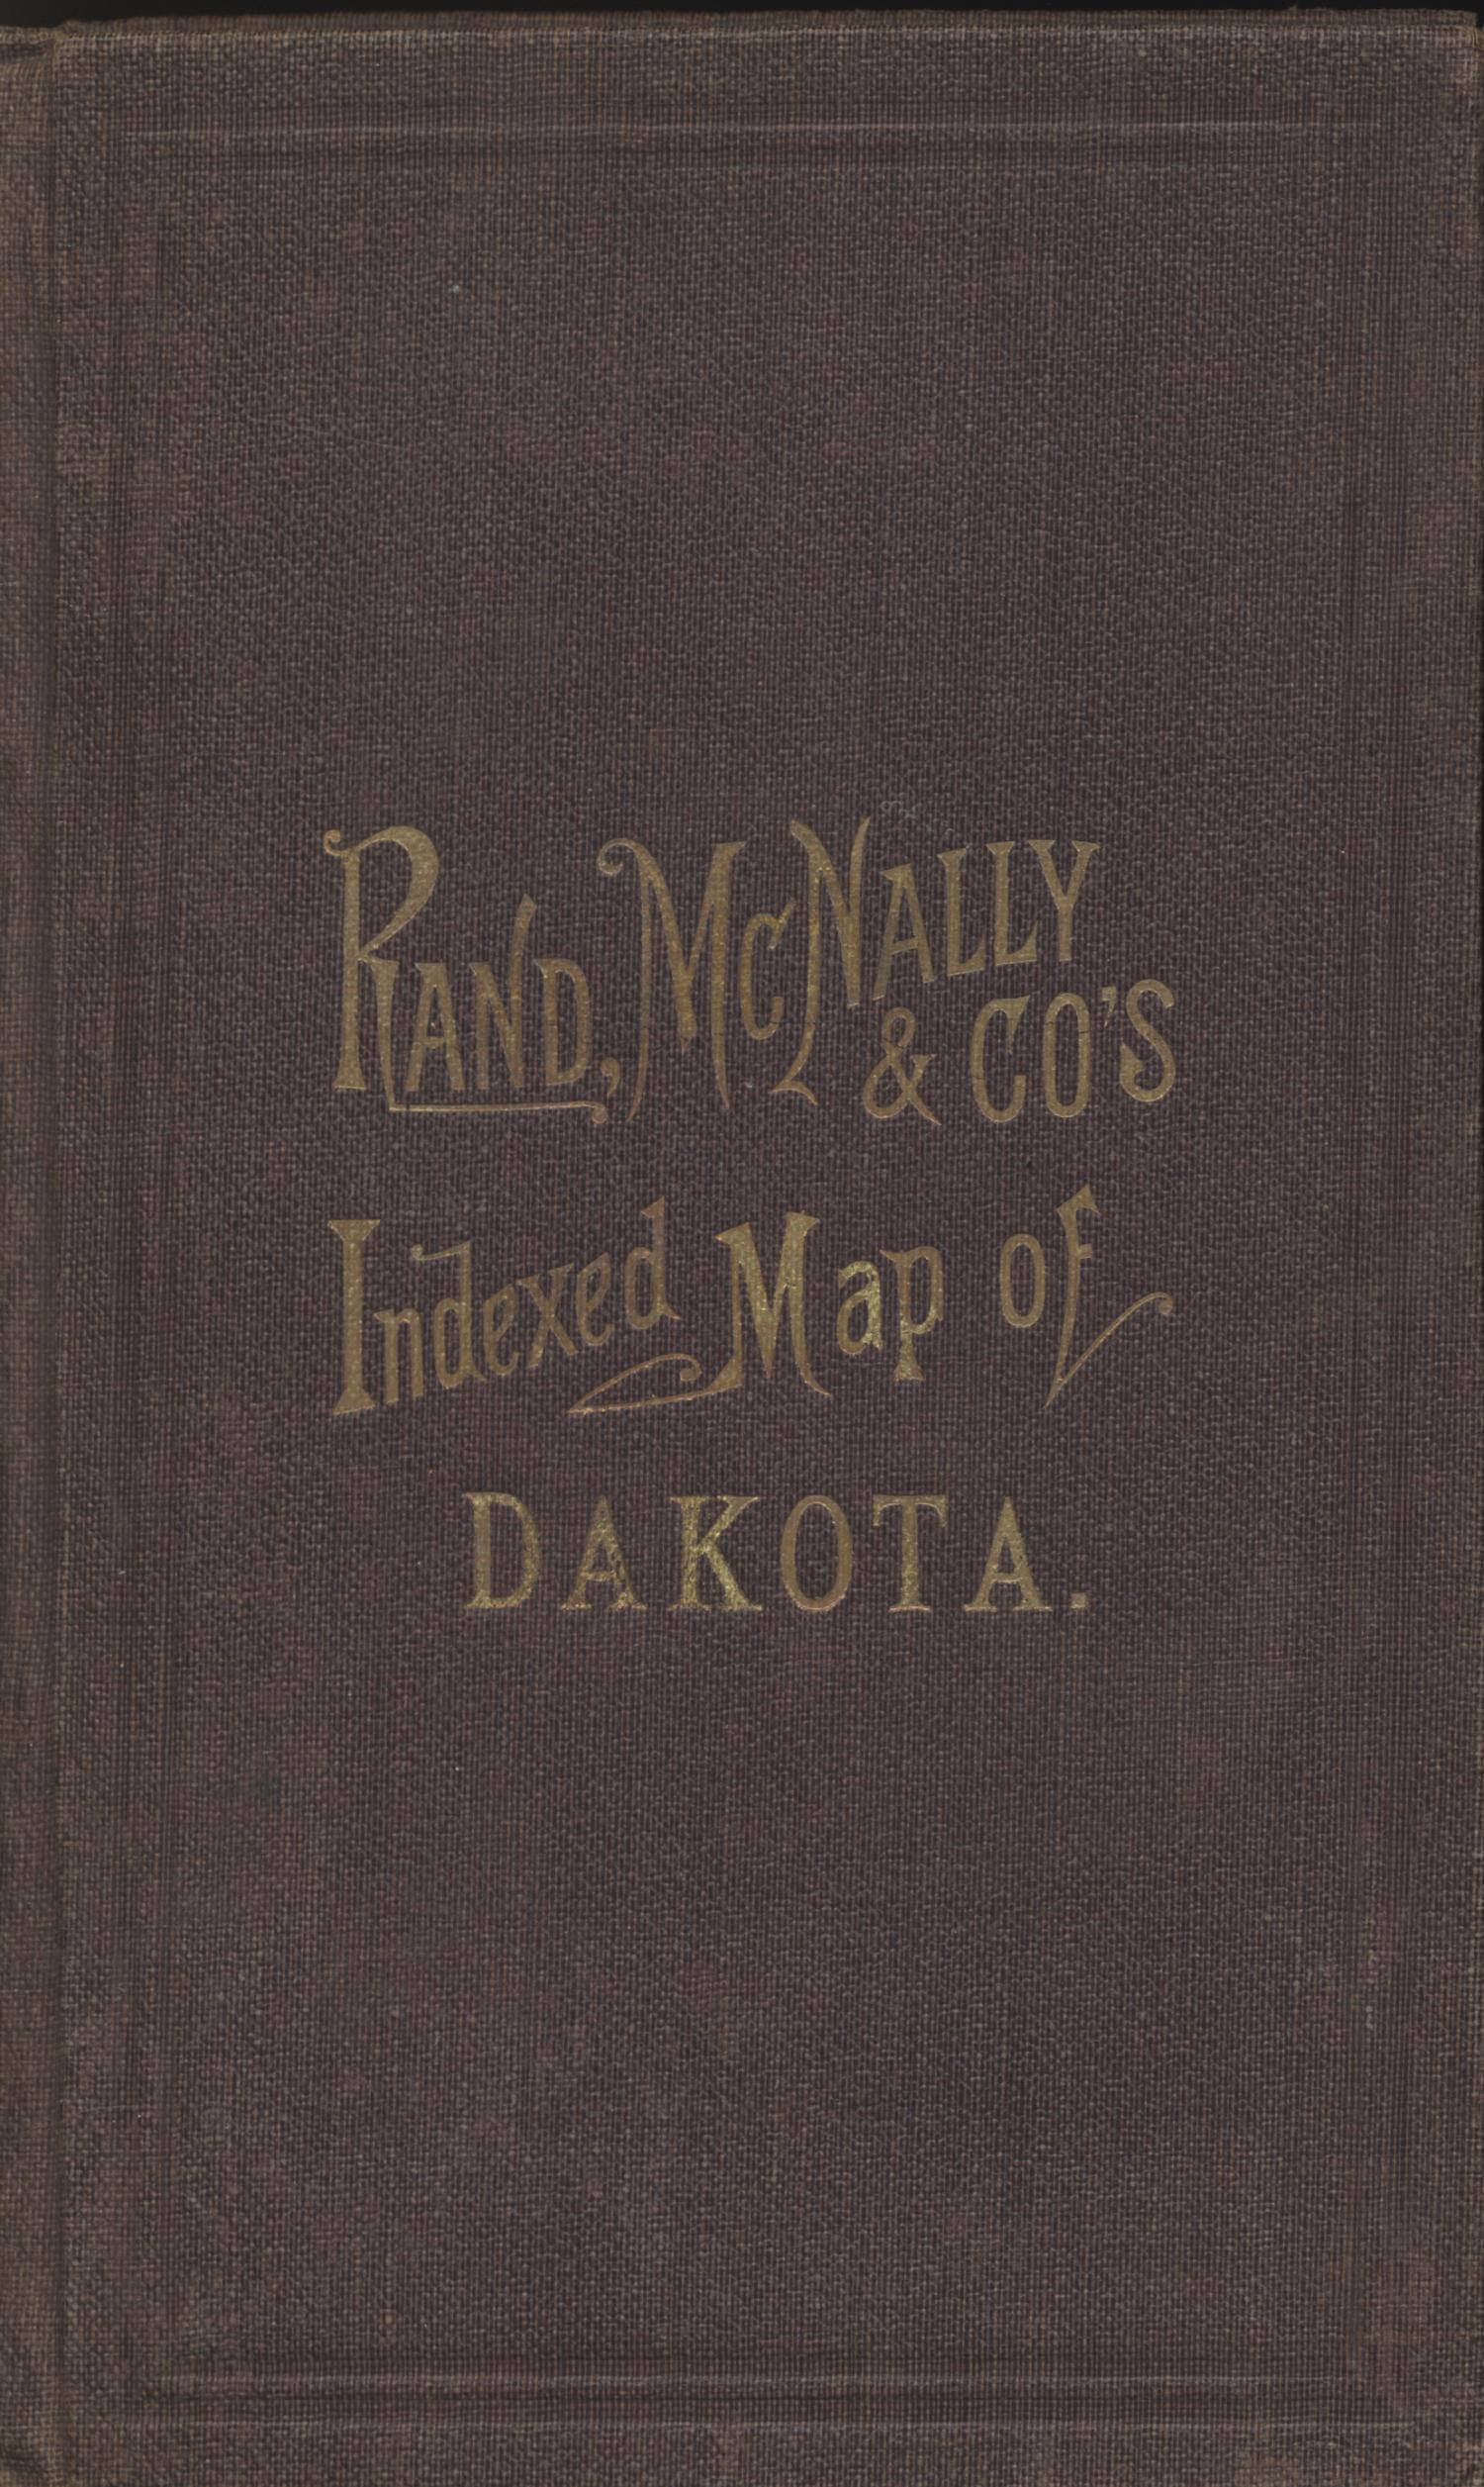 Rand, McNally & Co.s Dakota [Accompanying Text]., Explanation and supporting information related to map that shows late nineteenth century Dakota Territory counties, roads, railroads, reservoirs, forest reserves, Native American reservations, and notable physical features.,